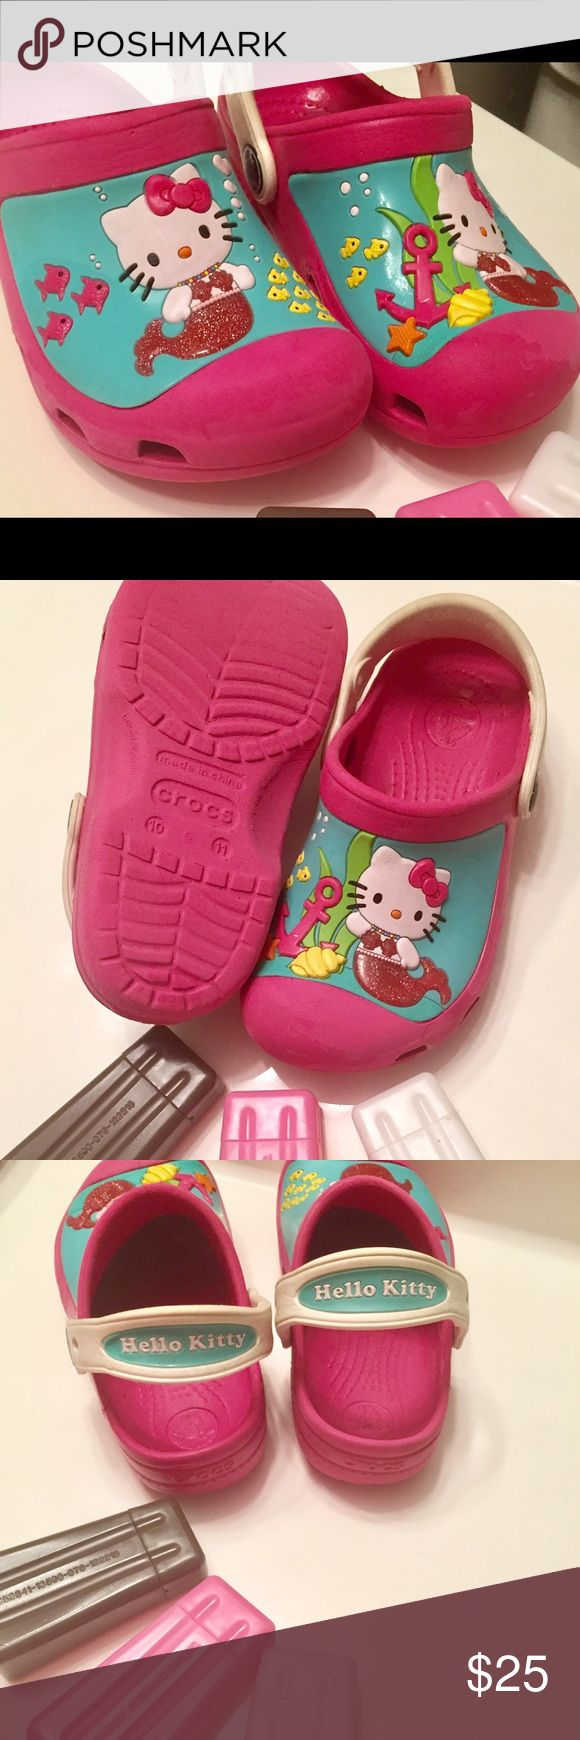 "Crocs Hello Kitty Mermaid Hot Pink Hello Kitty Crocs ""Mermaid"" Size 10-11 Toddler Gently Used CROCS Shoes Water Shoes"